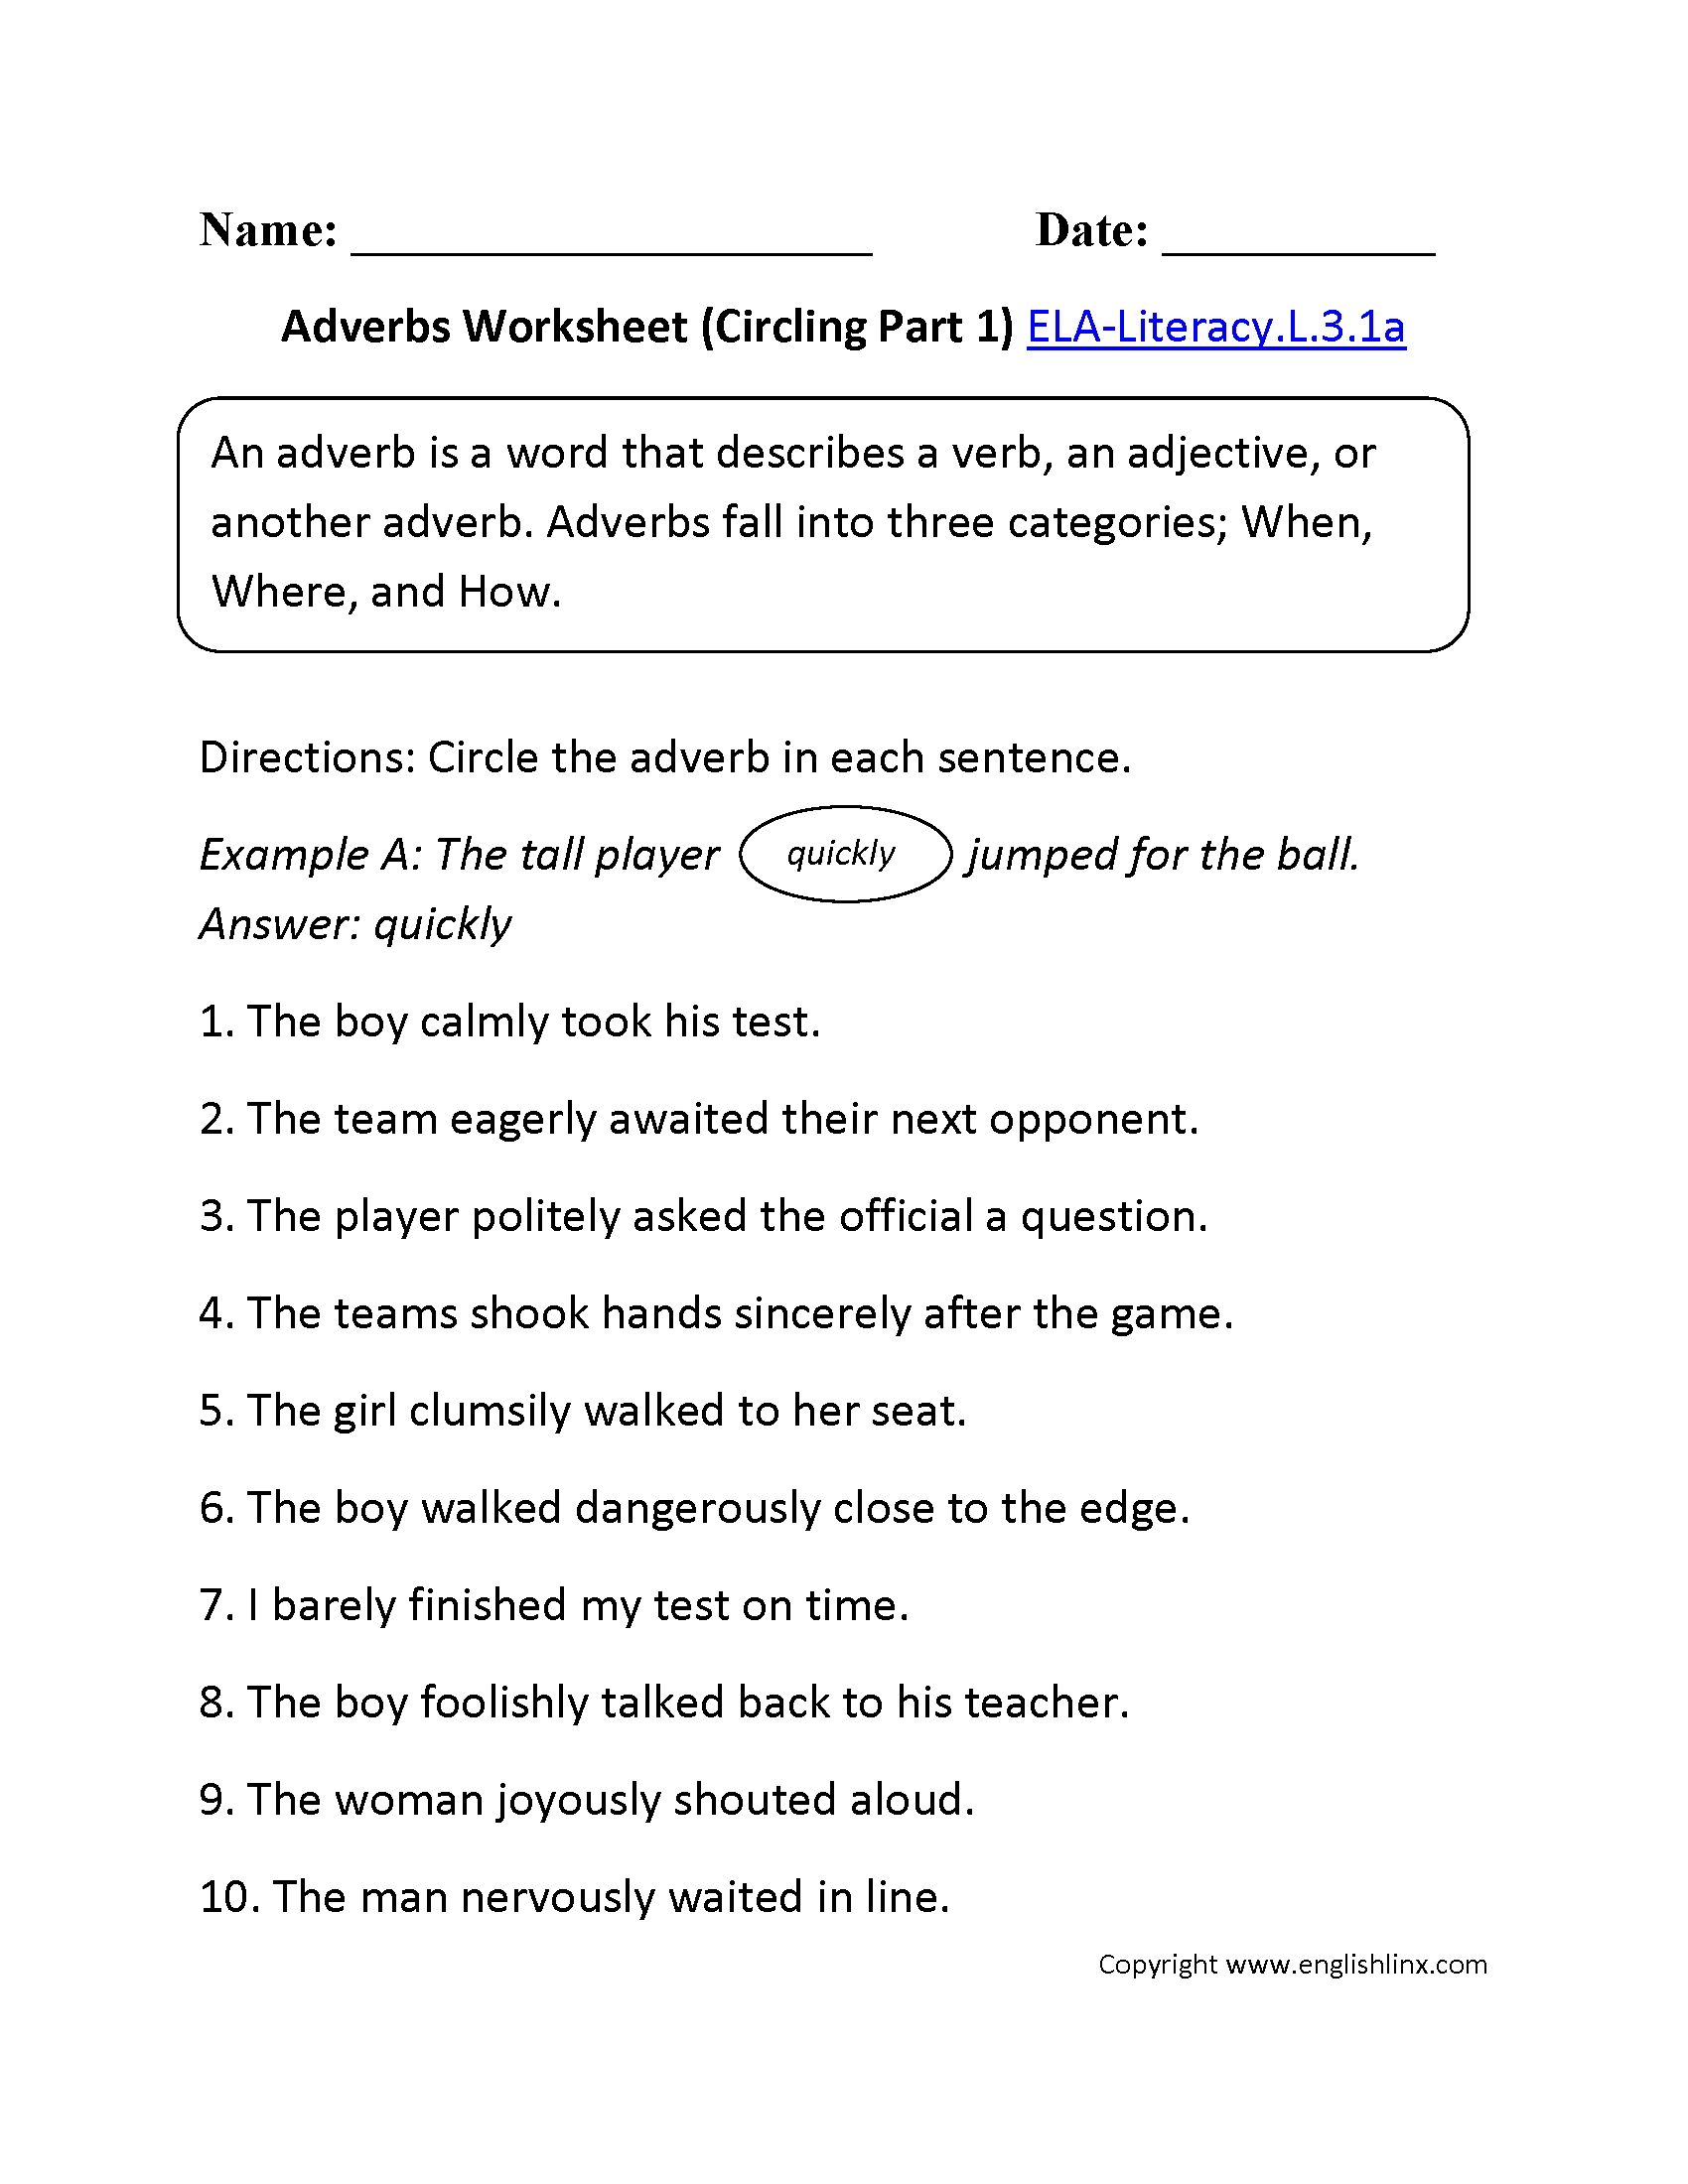 Worksheet Adverbs For Grade 5 adverb worksheets 3rd grade davezan common core language worksheets